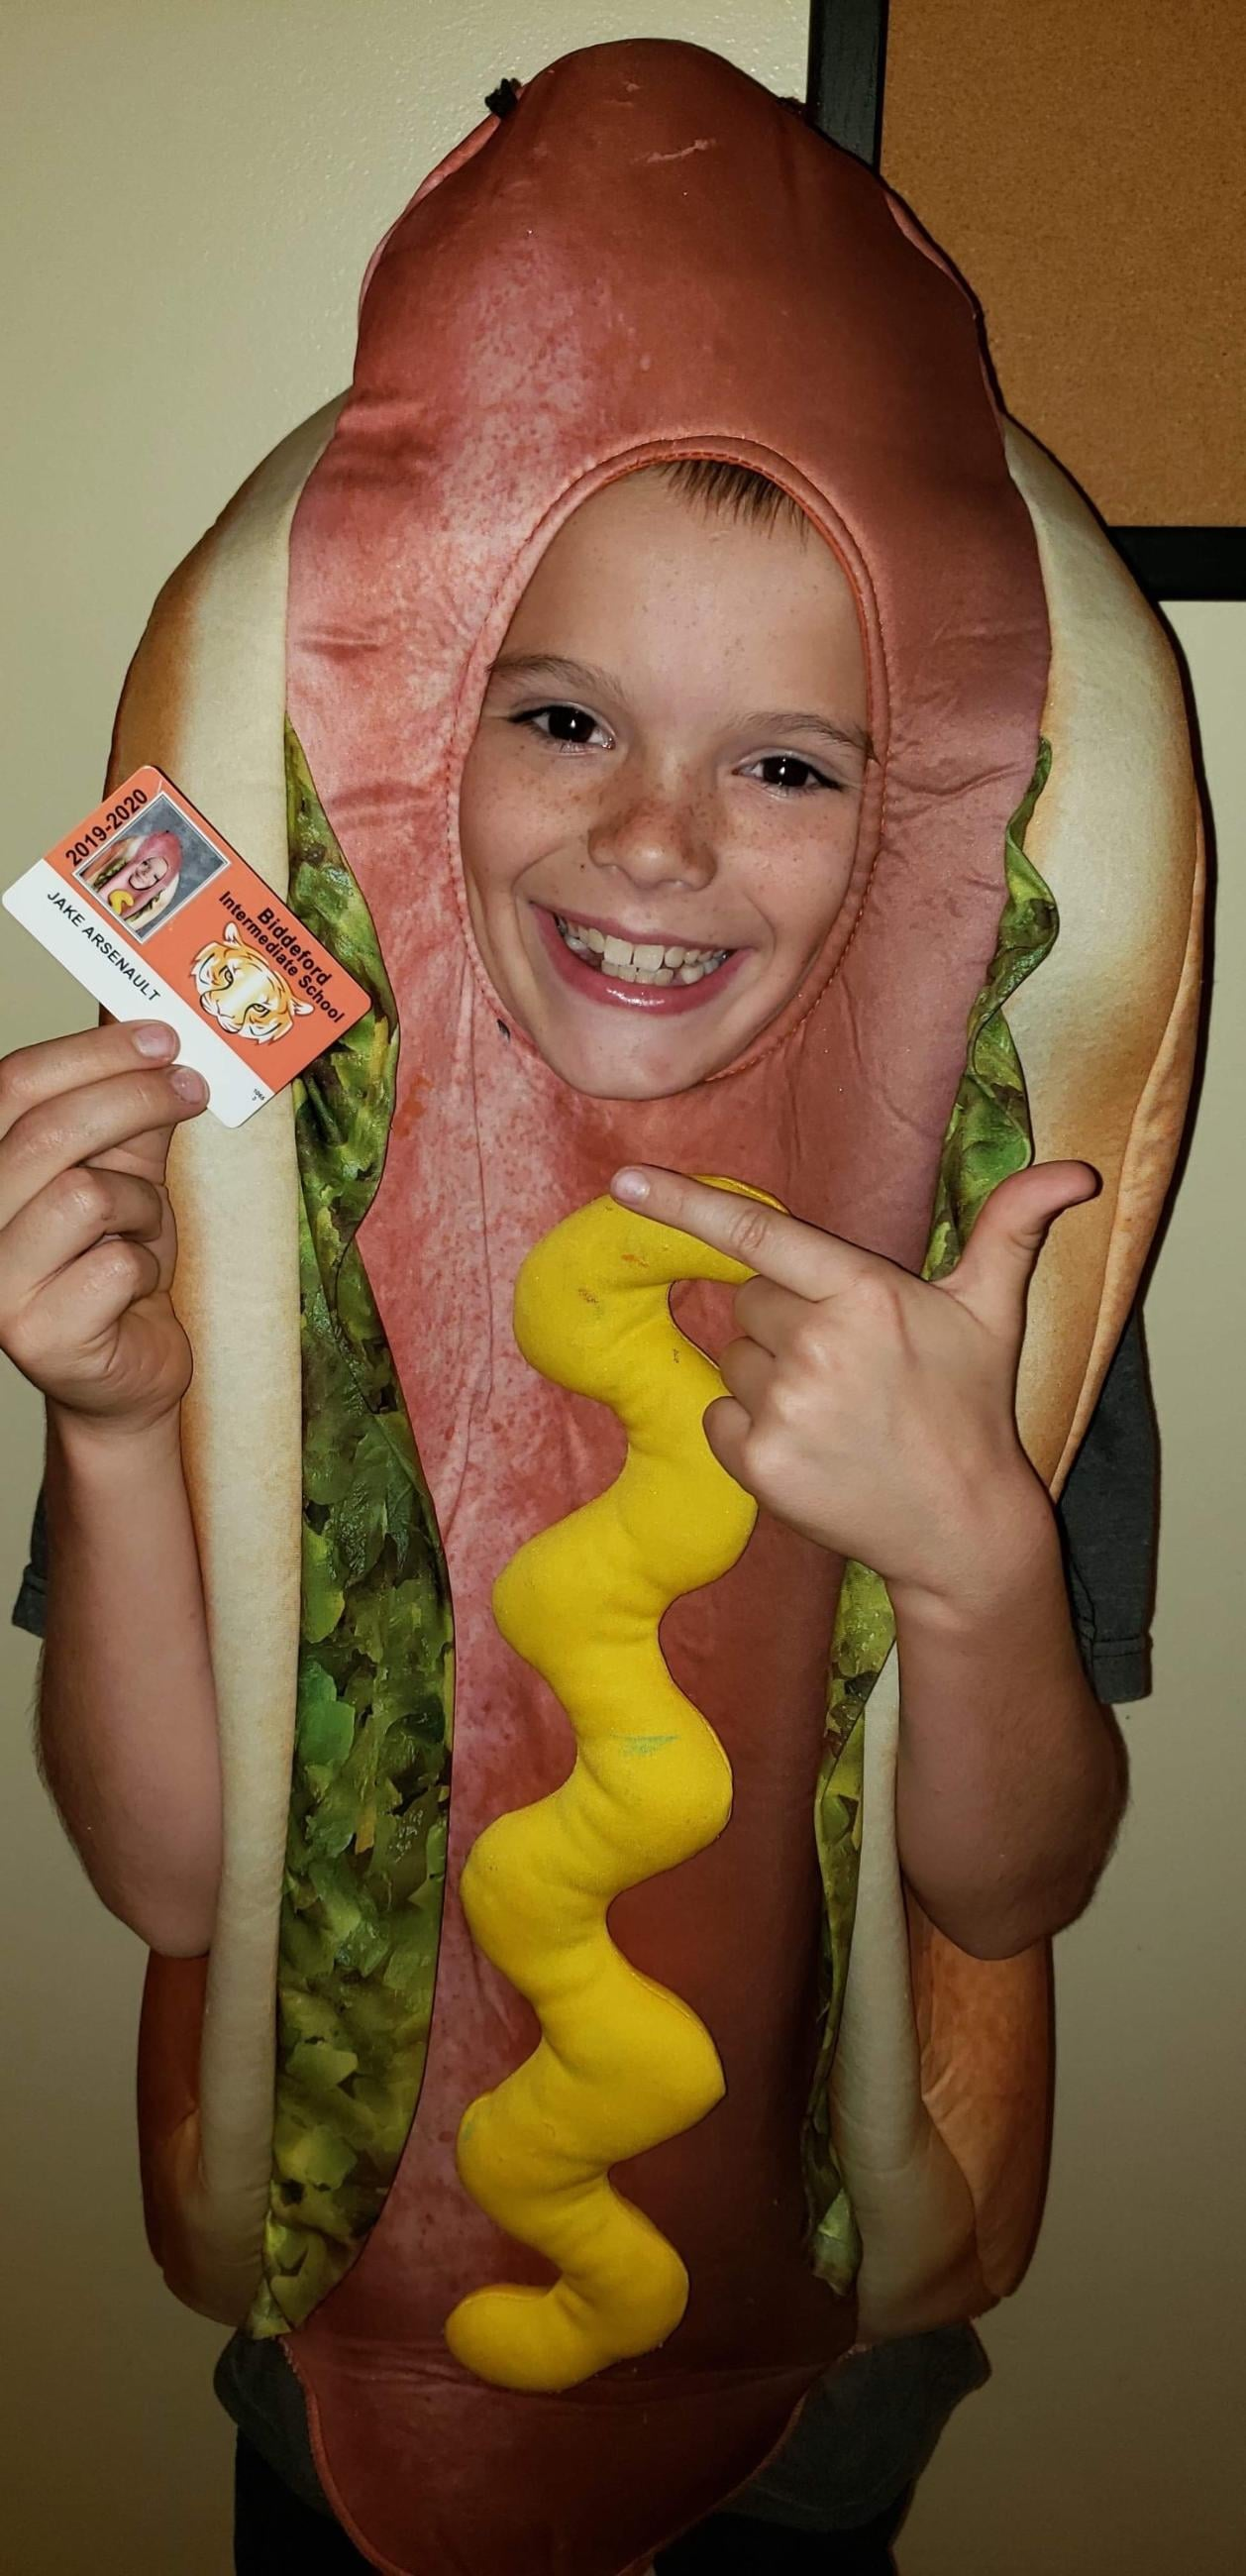 Yup, This 9-Year-Old Boy Took His School Pictures Dressed as a Hot Dog, Mustard and All